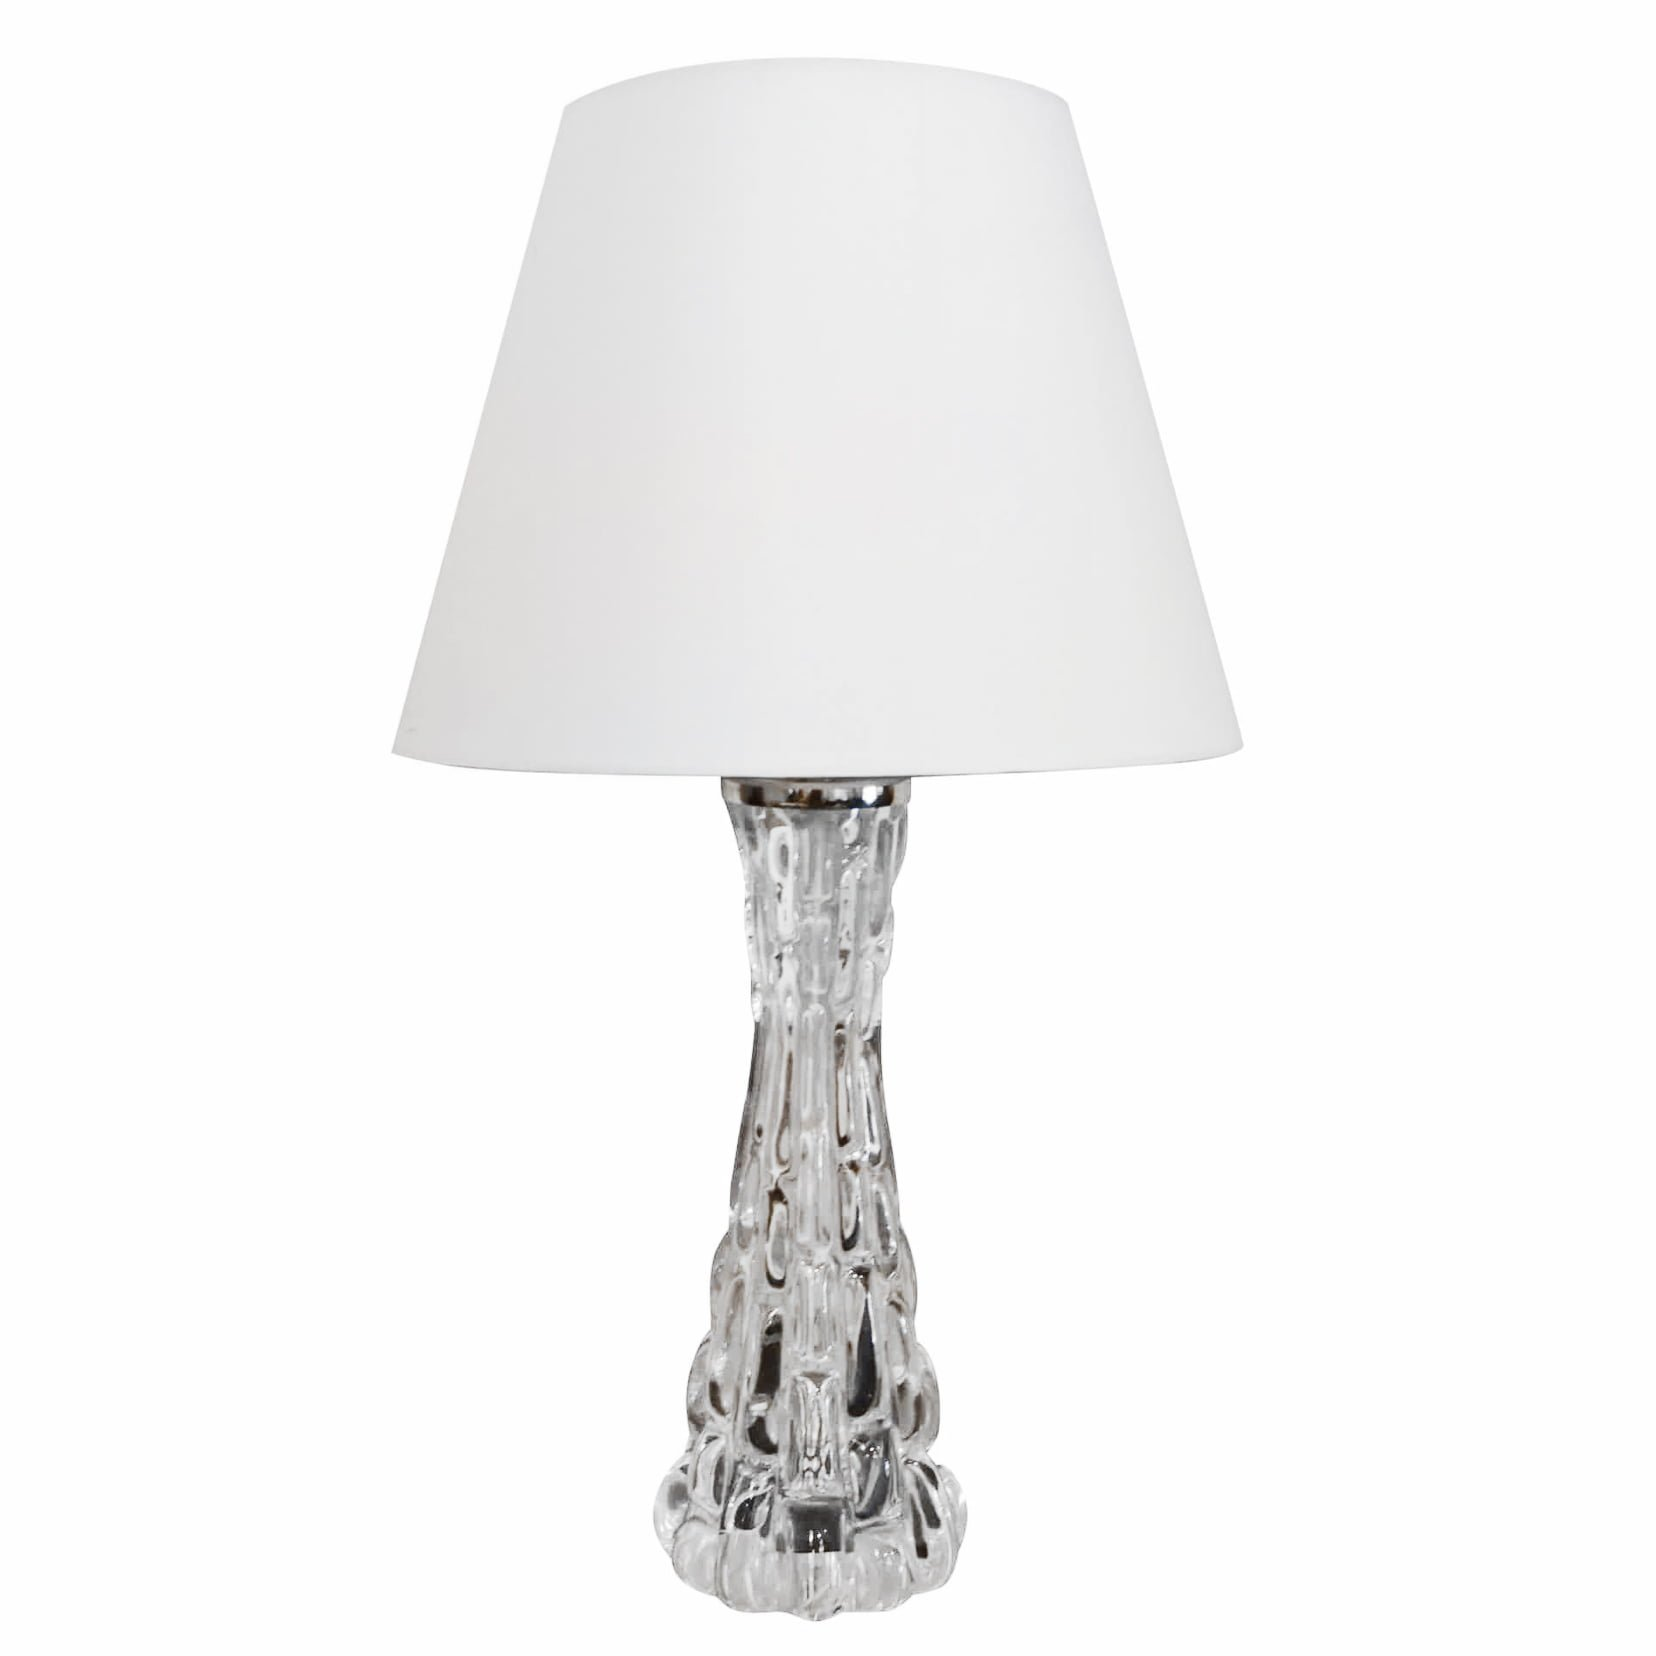 20th Century Clear Orrefors Table Lamp – Swedish Desk Lamp by Carl Fagerlund